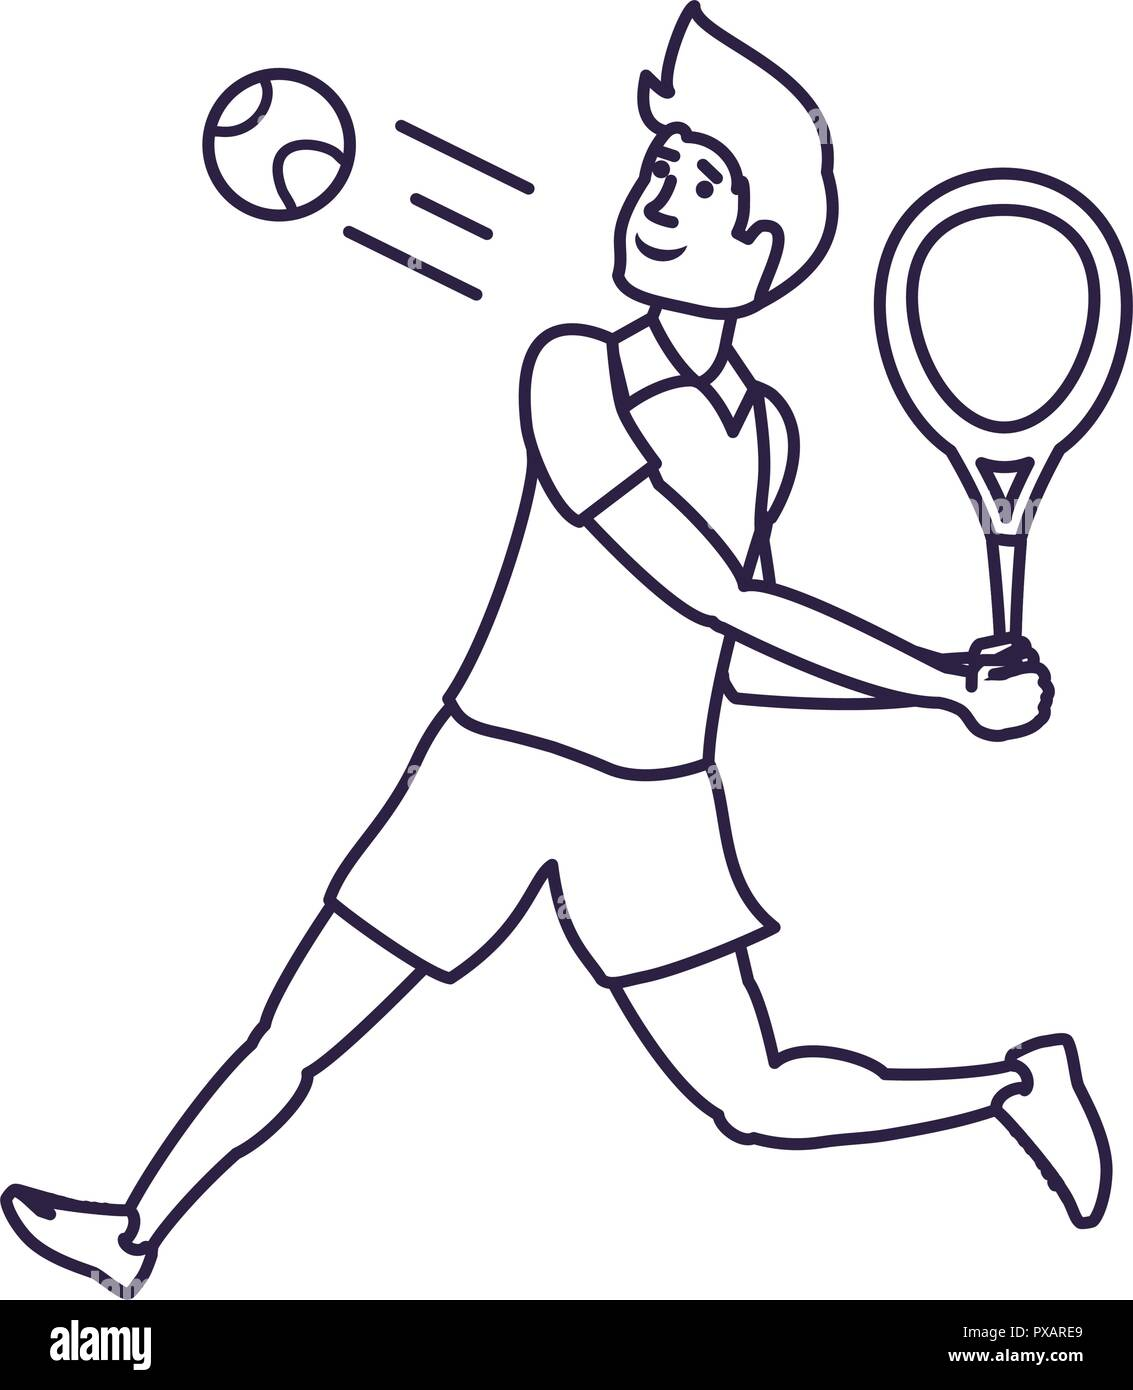 Man Tennis Playing With Racket Vector Illustration Design Stock Vector Image Art Alamy